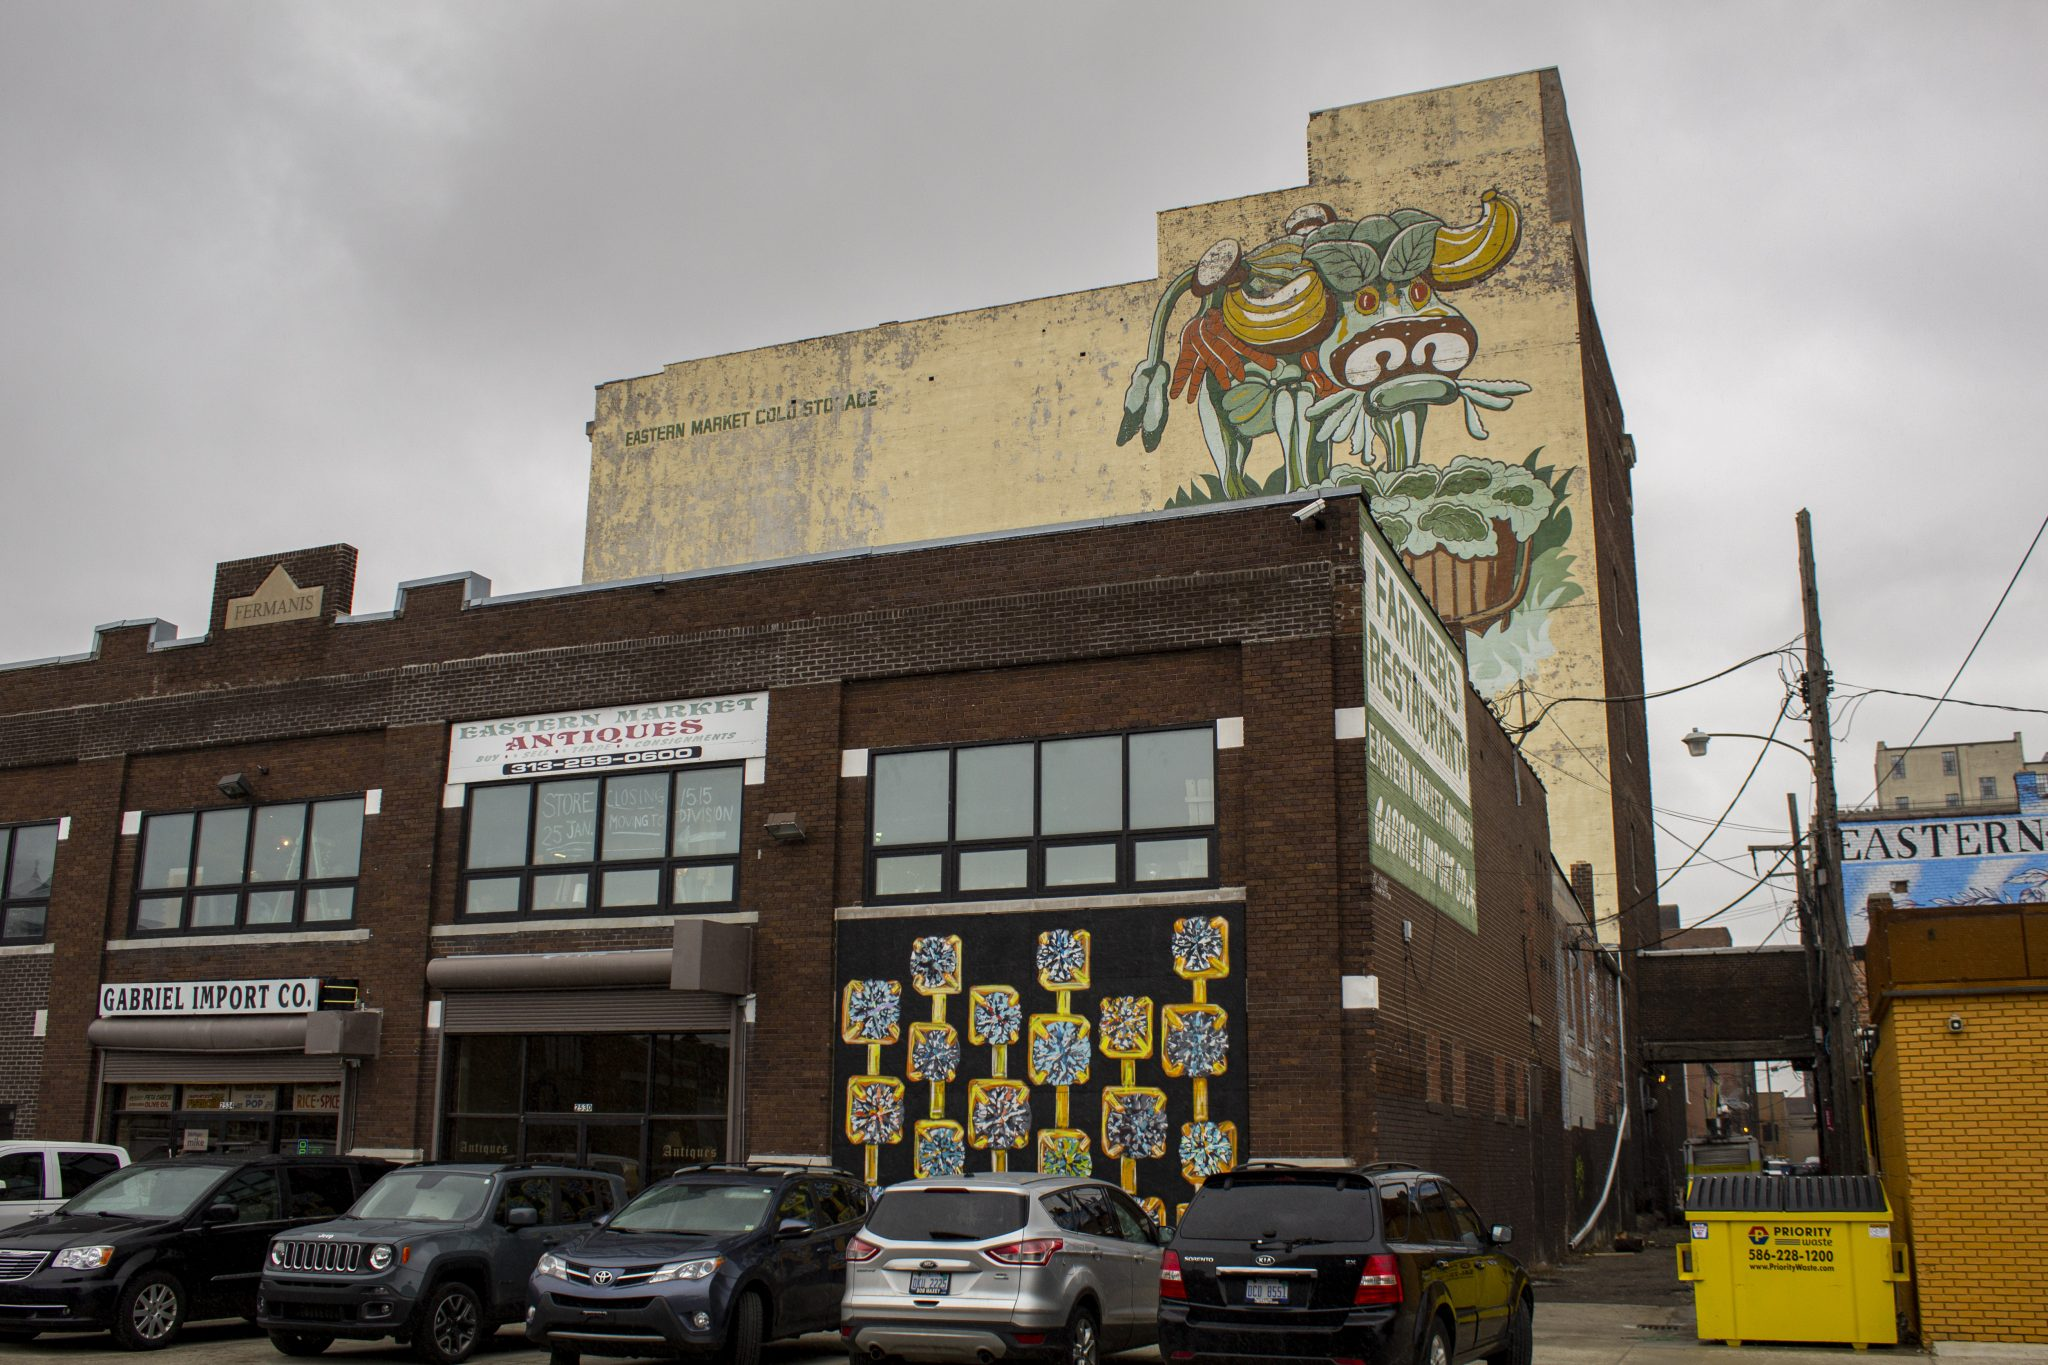 THE CURRENT LOCATION OF EASTERN MARKET ANTIQUES AT 2530 MARKET ST. PHOTO JOHN BOZICK